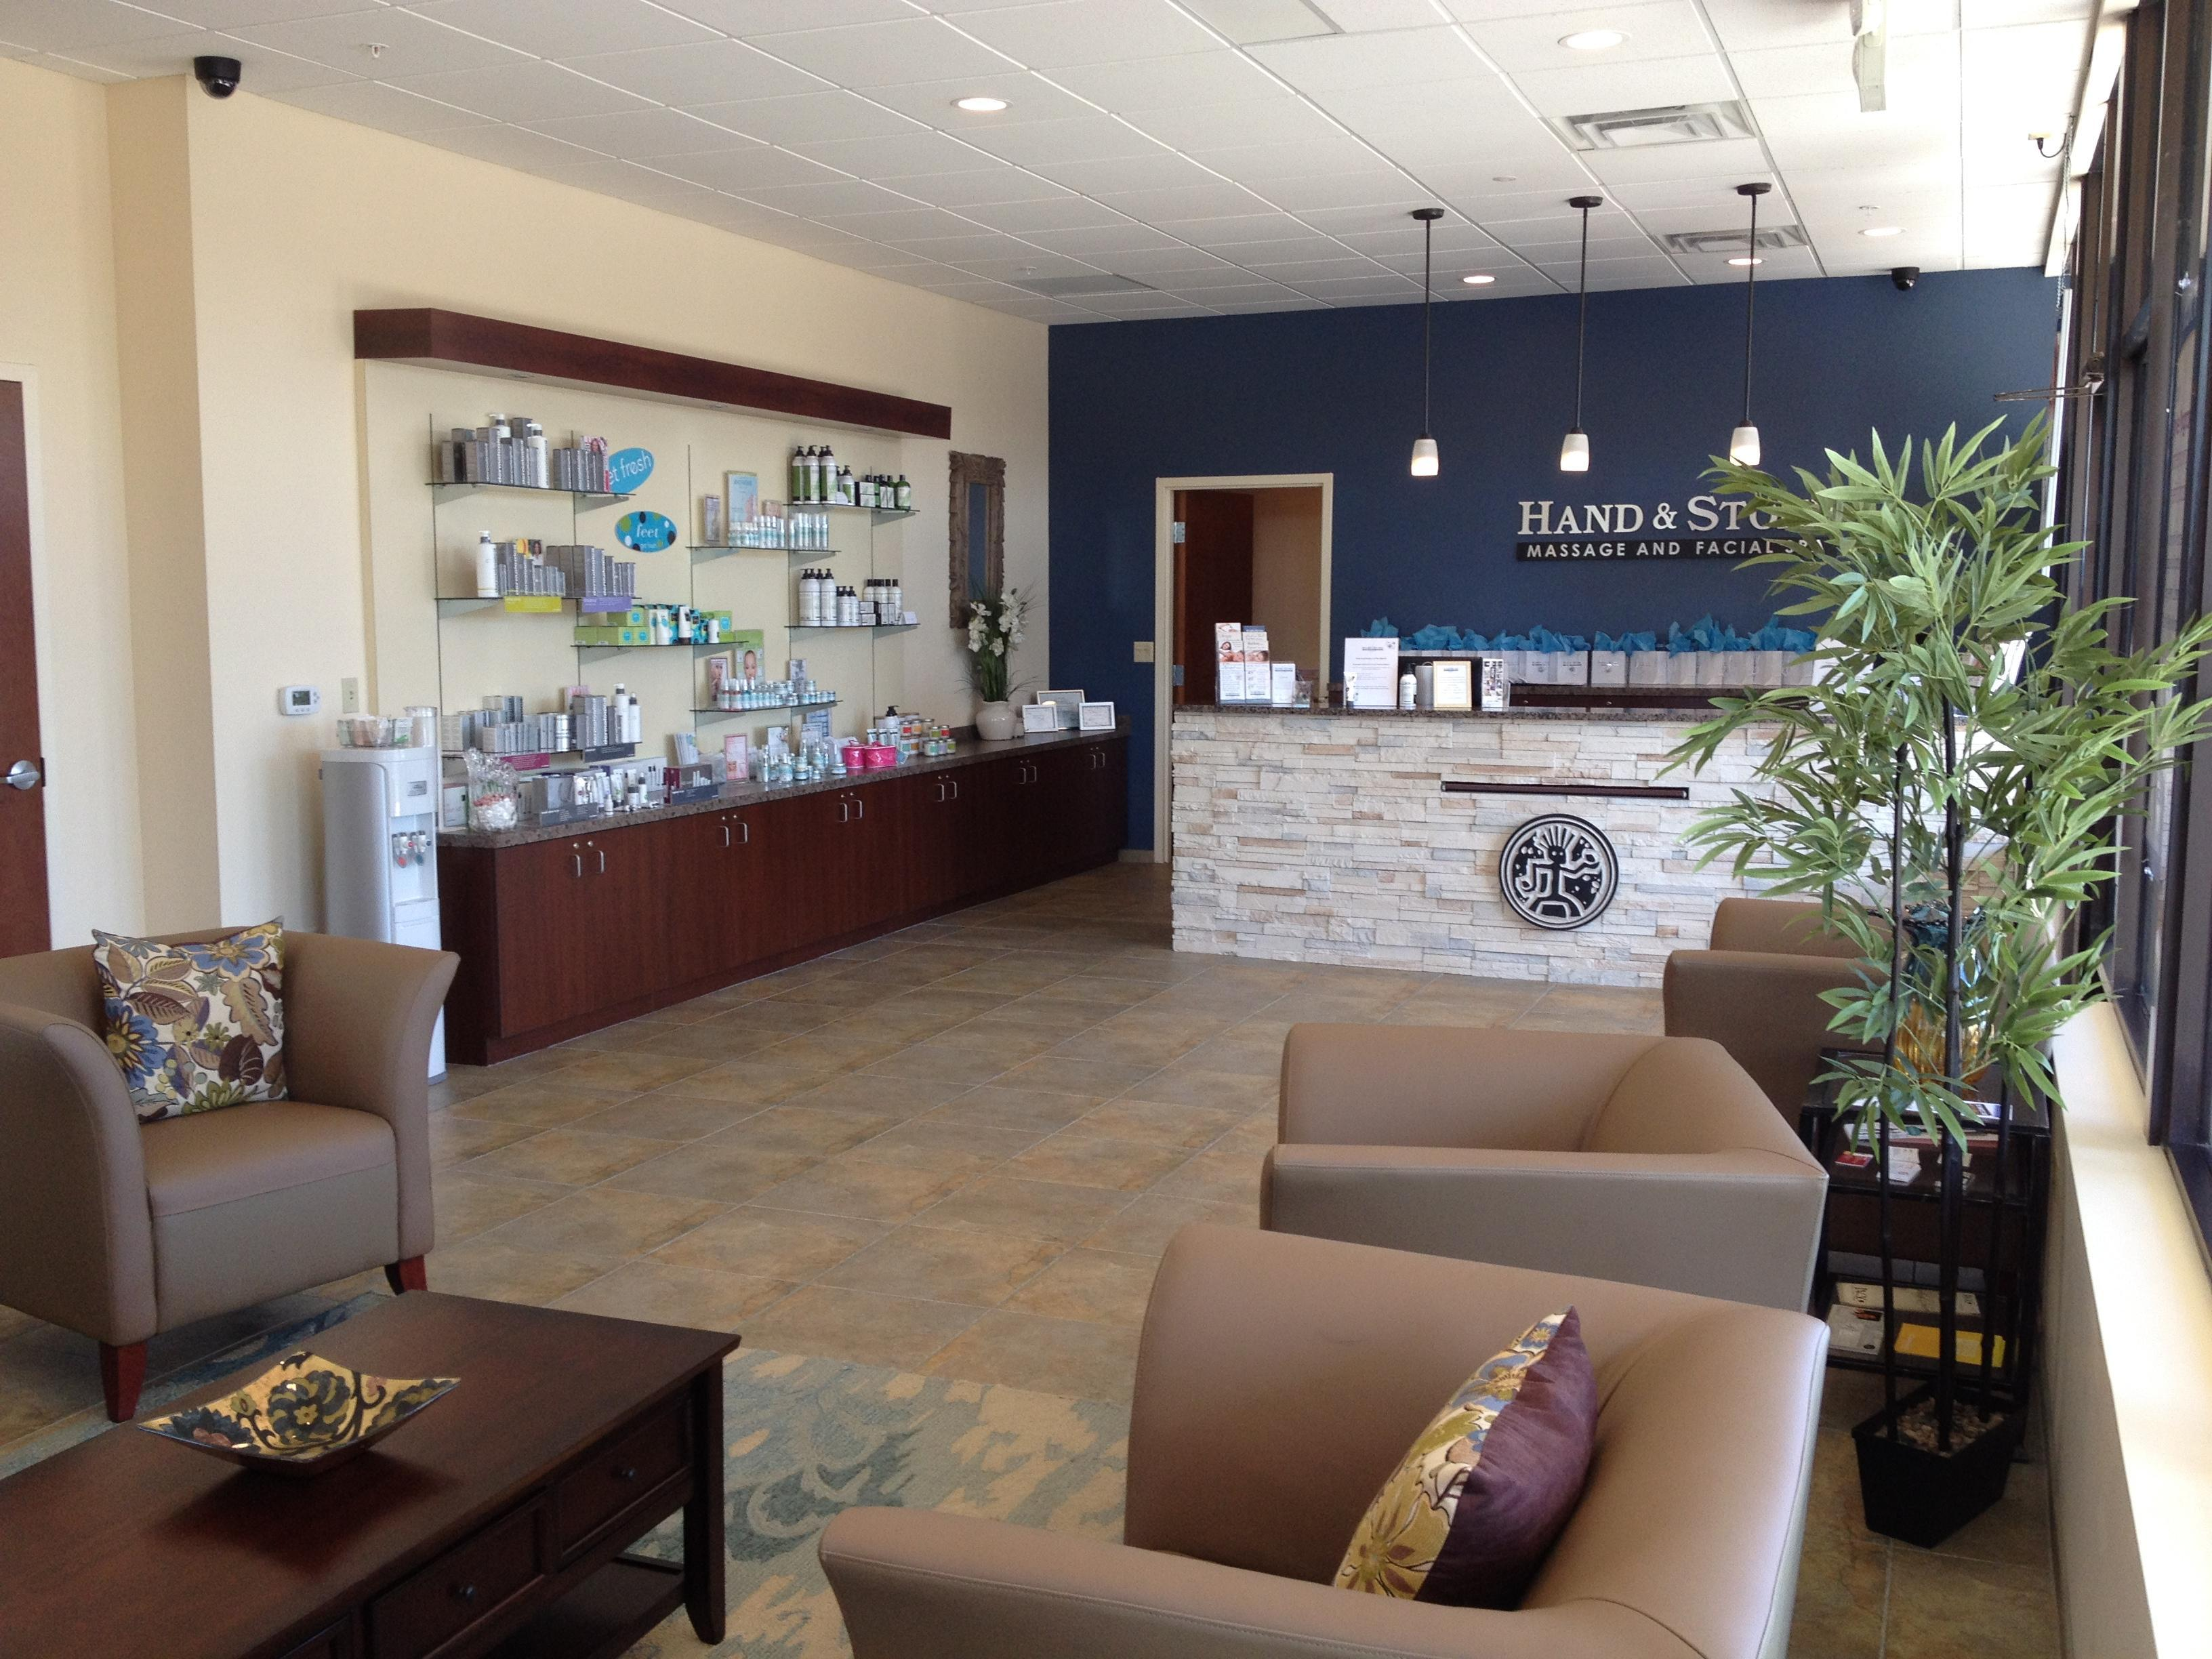 Welcome to Hand & Stone Massage and Facial Wheaton IL